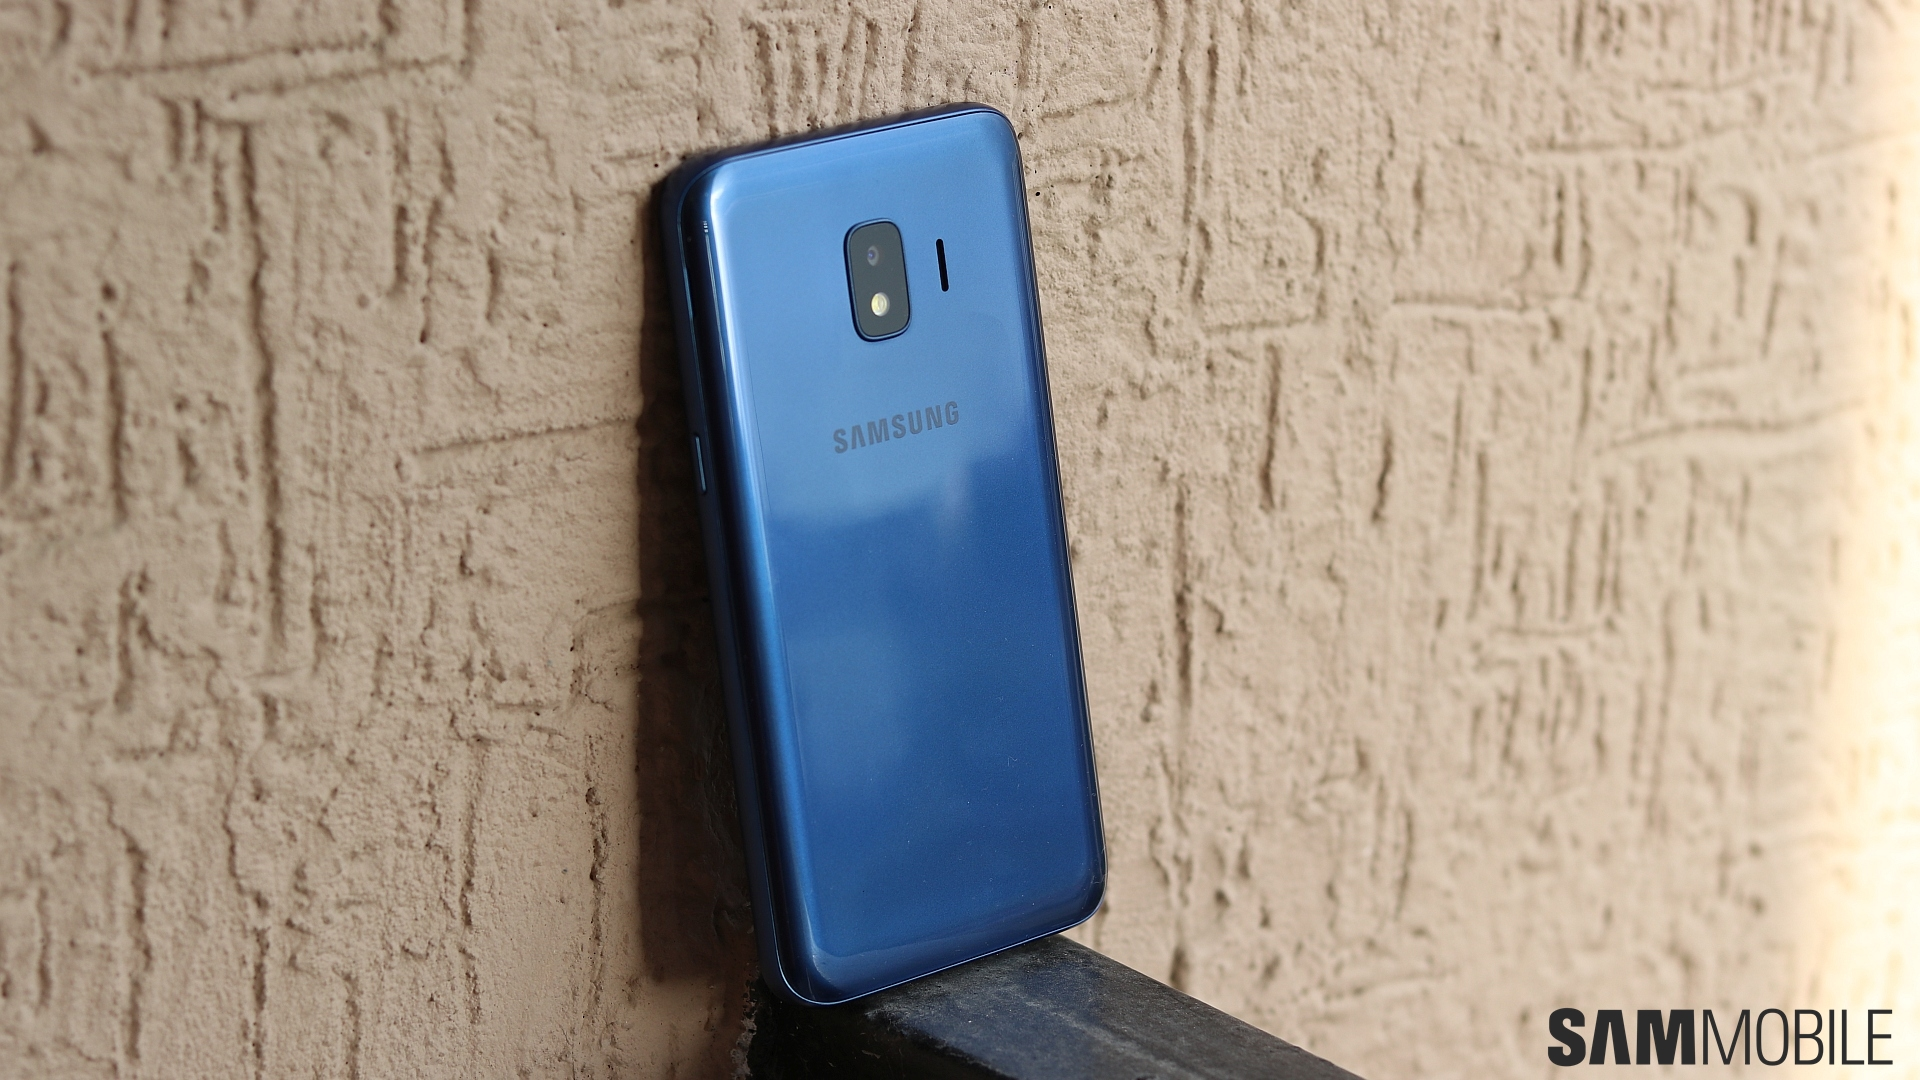 Hands On This Is The Galaxy J2 Core Samsungs Android Go Sharp Z2 4g Lte 32gb